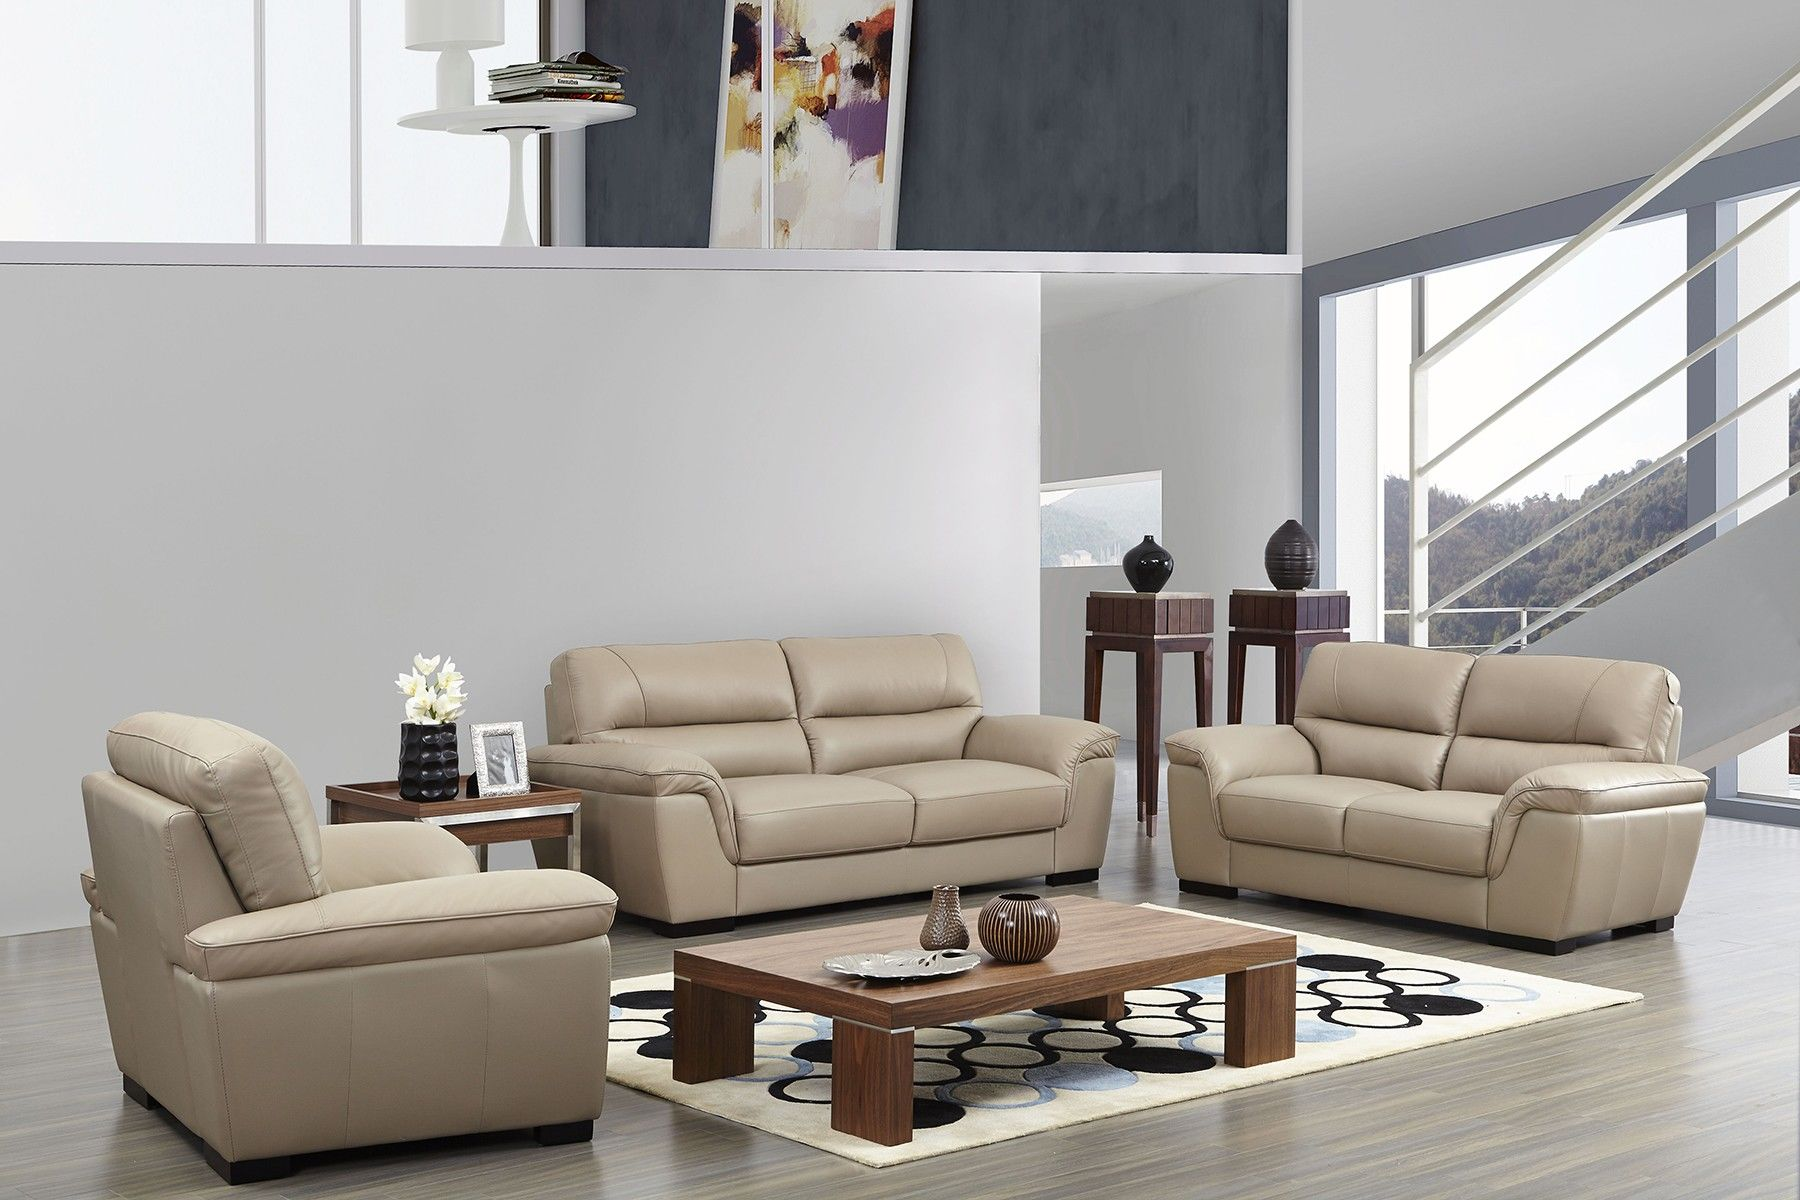 beautiful living room sofa sets decoration-Fantastic Living Room sofa Sets Ideas